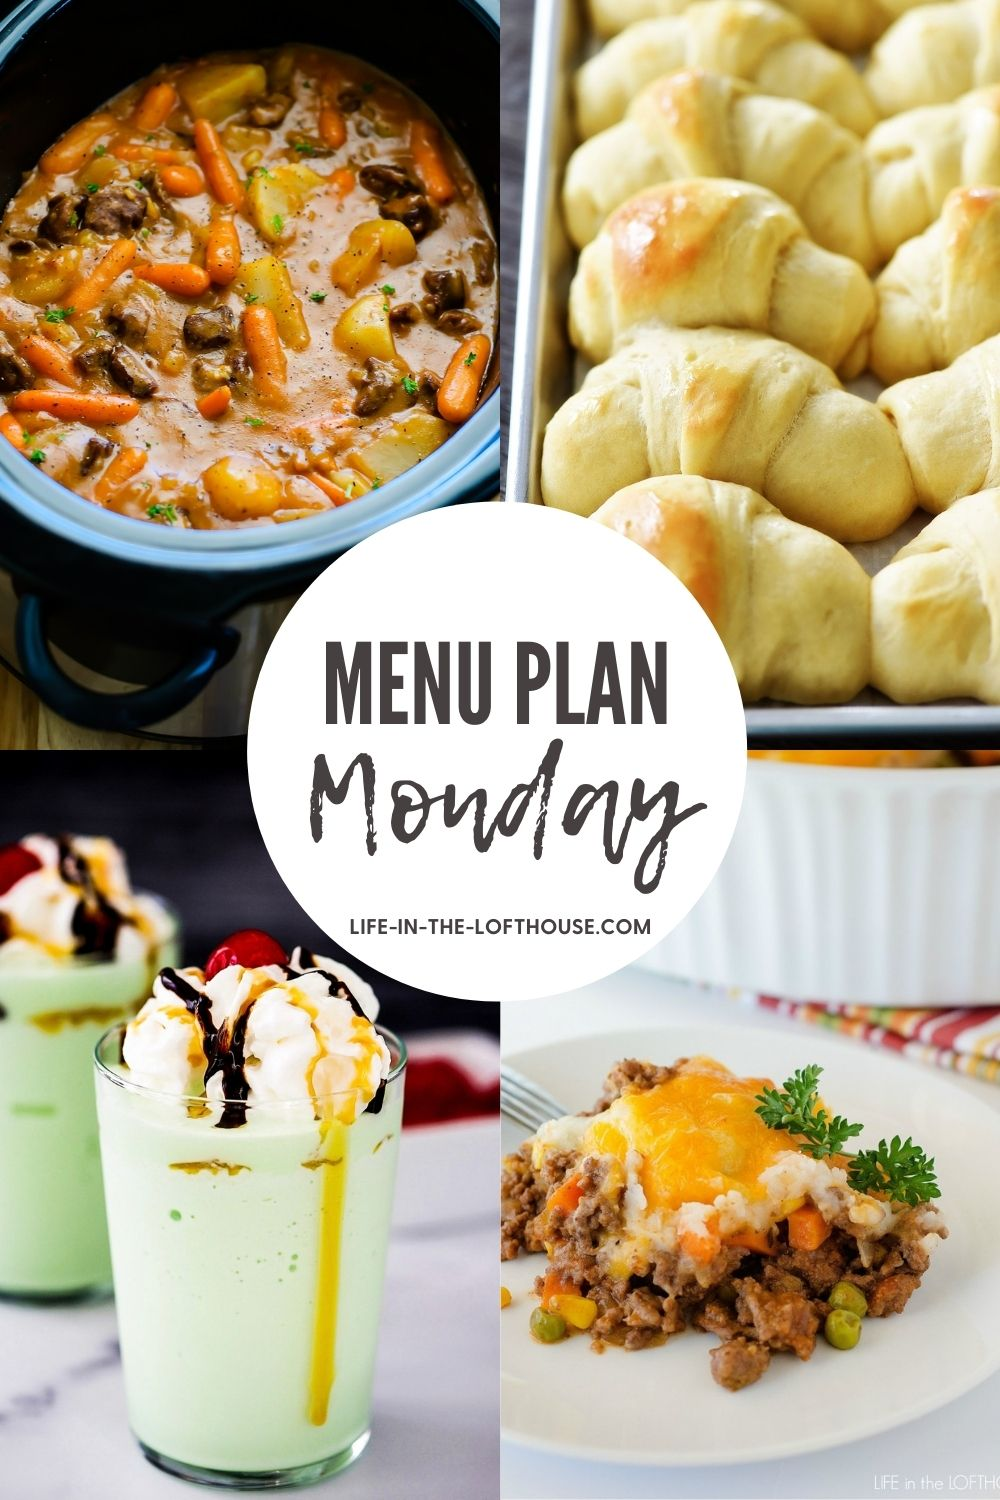 Menu Plan Monday is a menu plan filled with family-favorite recipes. Each week includes six dinners and one dessert idea!